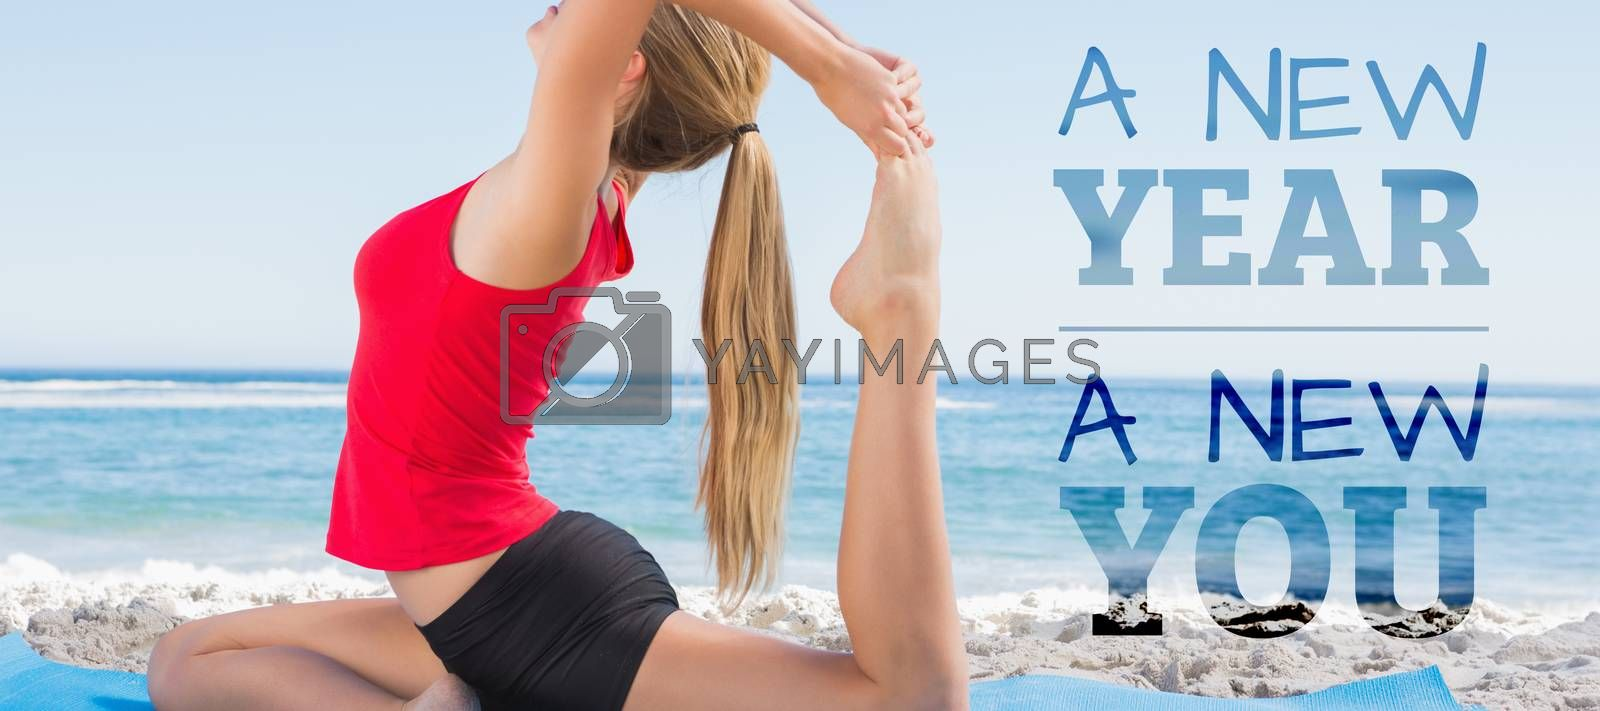 New year new you against fit blonde stretching leg in yoga pose